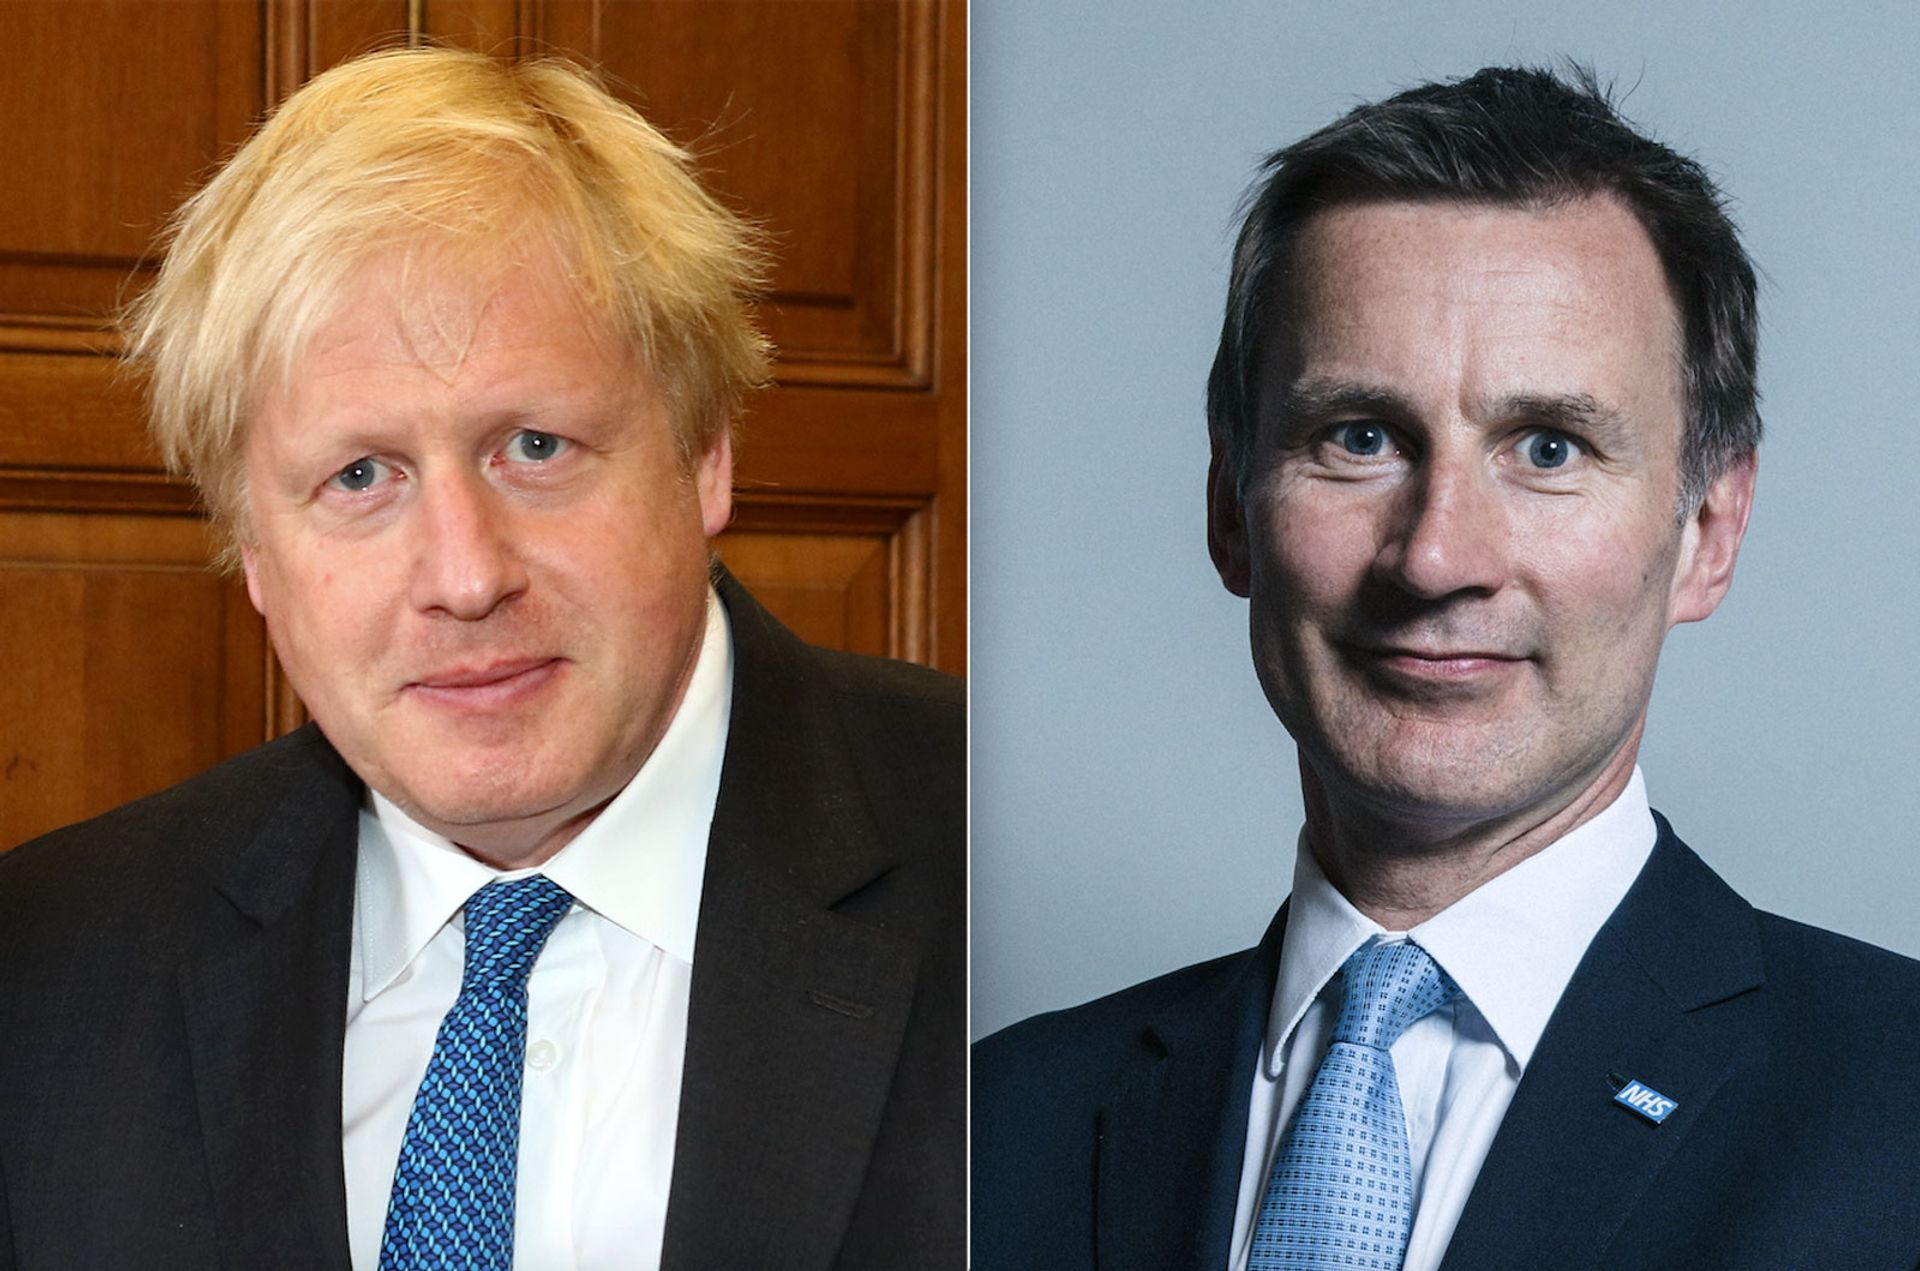 Boris Johnson and Jeremy Hunt cc Foreign and Commonwealth Office. cc Chris McAndrew